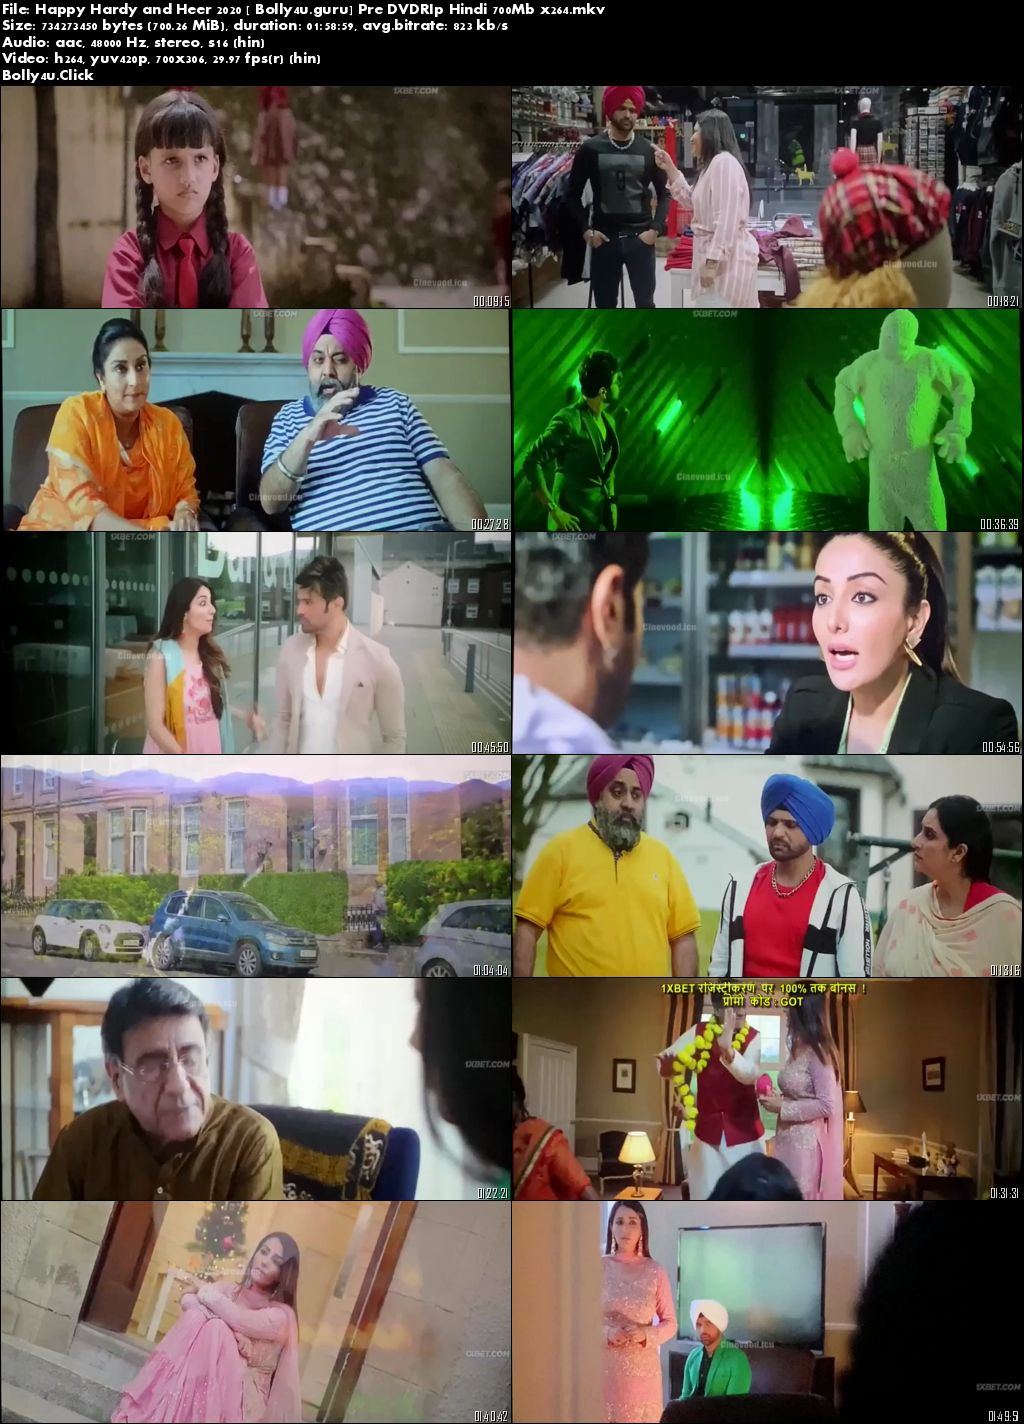 Happy Hardy and Heer 2020 Pre DVDRip 300Mb Hindi 480p Download